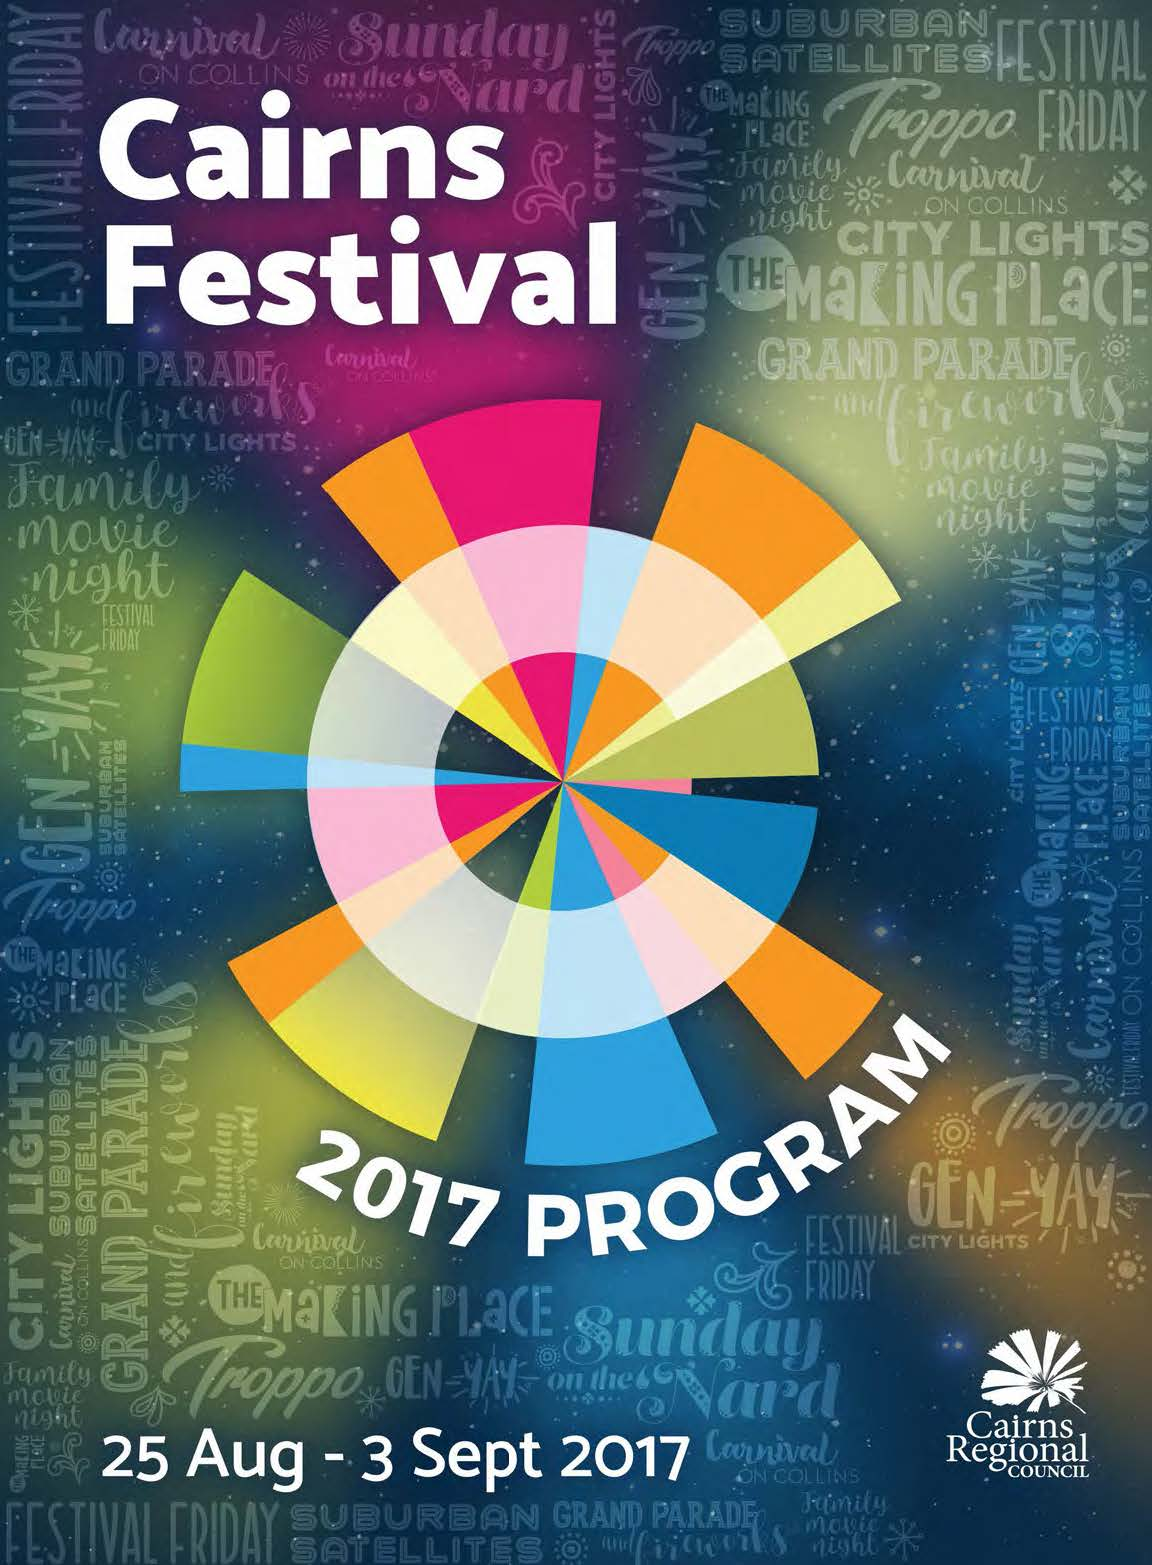 Cairns Festival E-Program